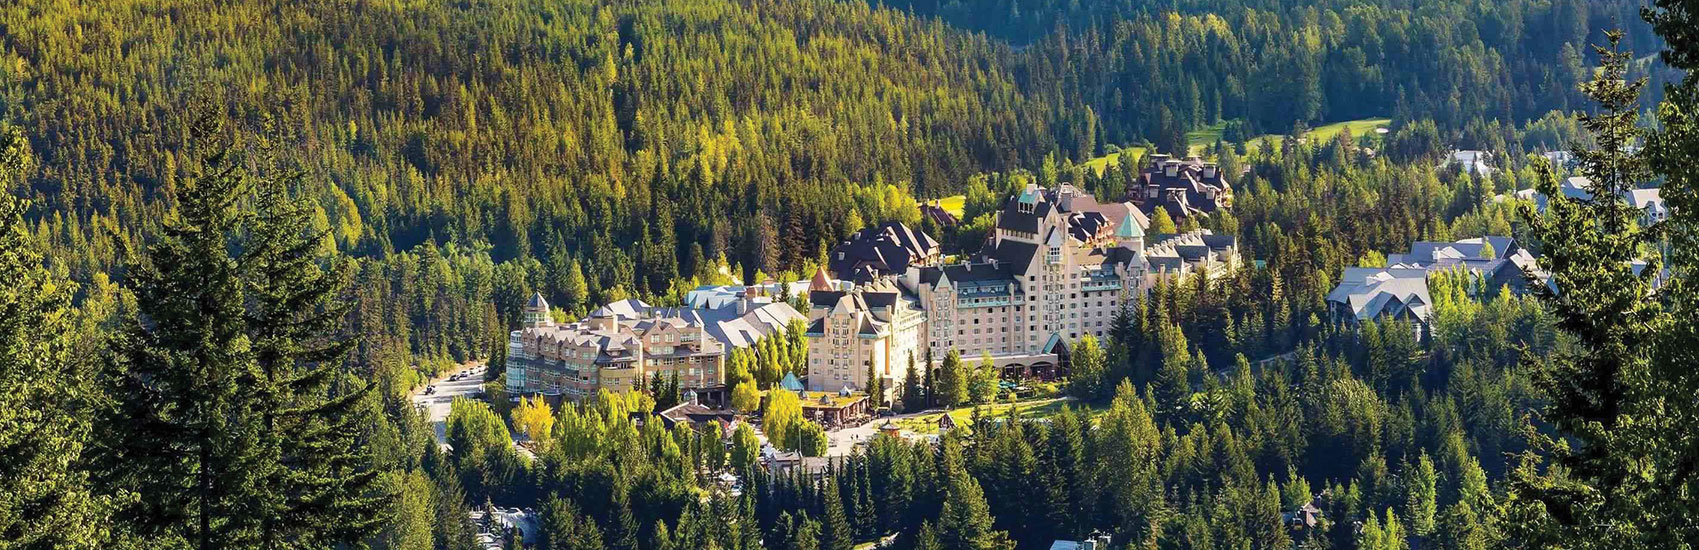 The Fairmont Chateau Whistler 0